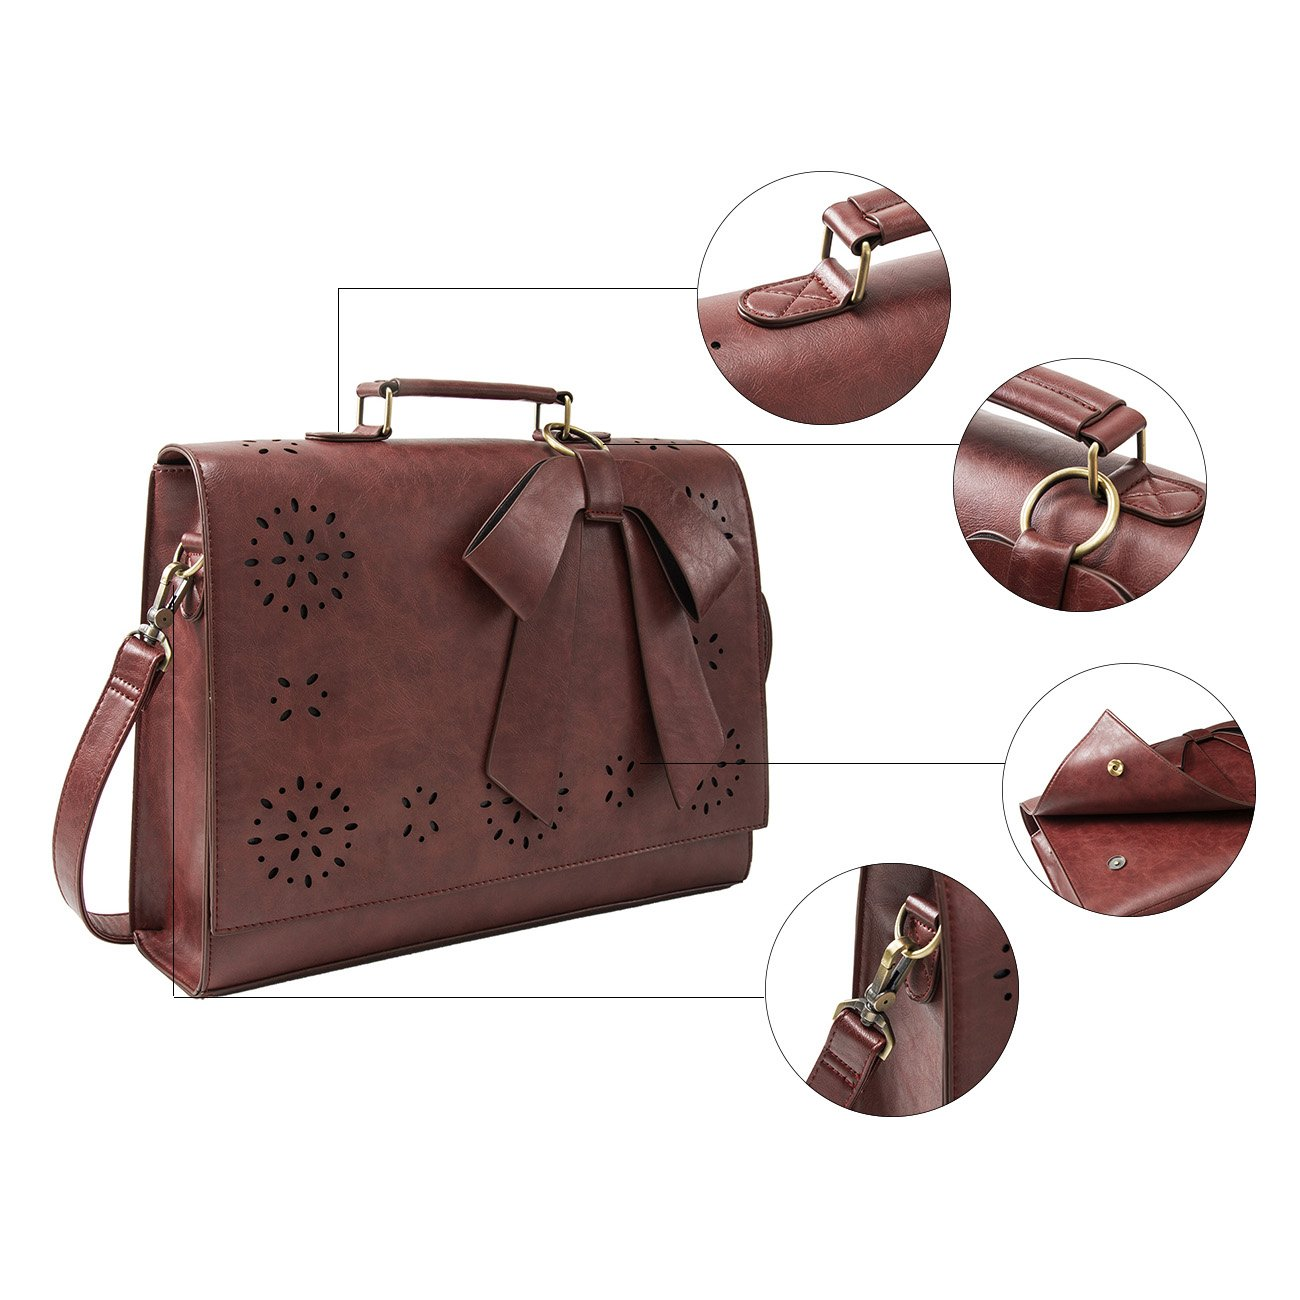 ECOSUSI Ladies PU Leather Laptop Bag Briefcase Crossbody Messenger Bags Satchel Purse Fit 14'' Laptop, Brown by ECOSUSI (Image #5)